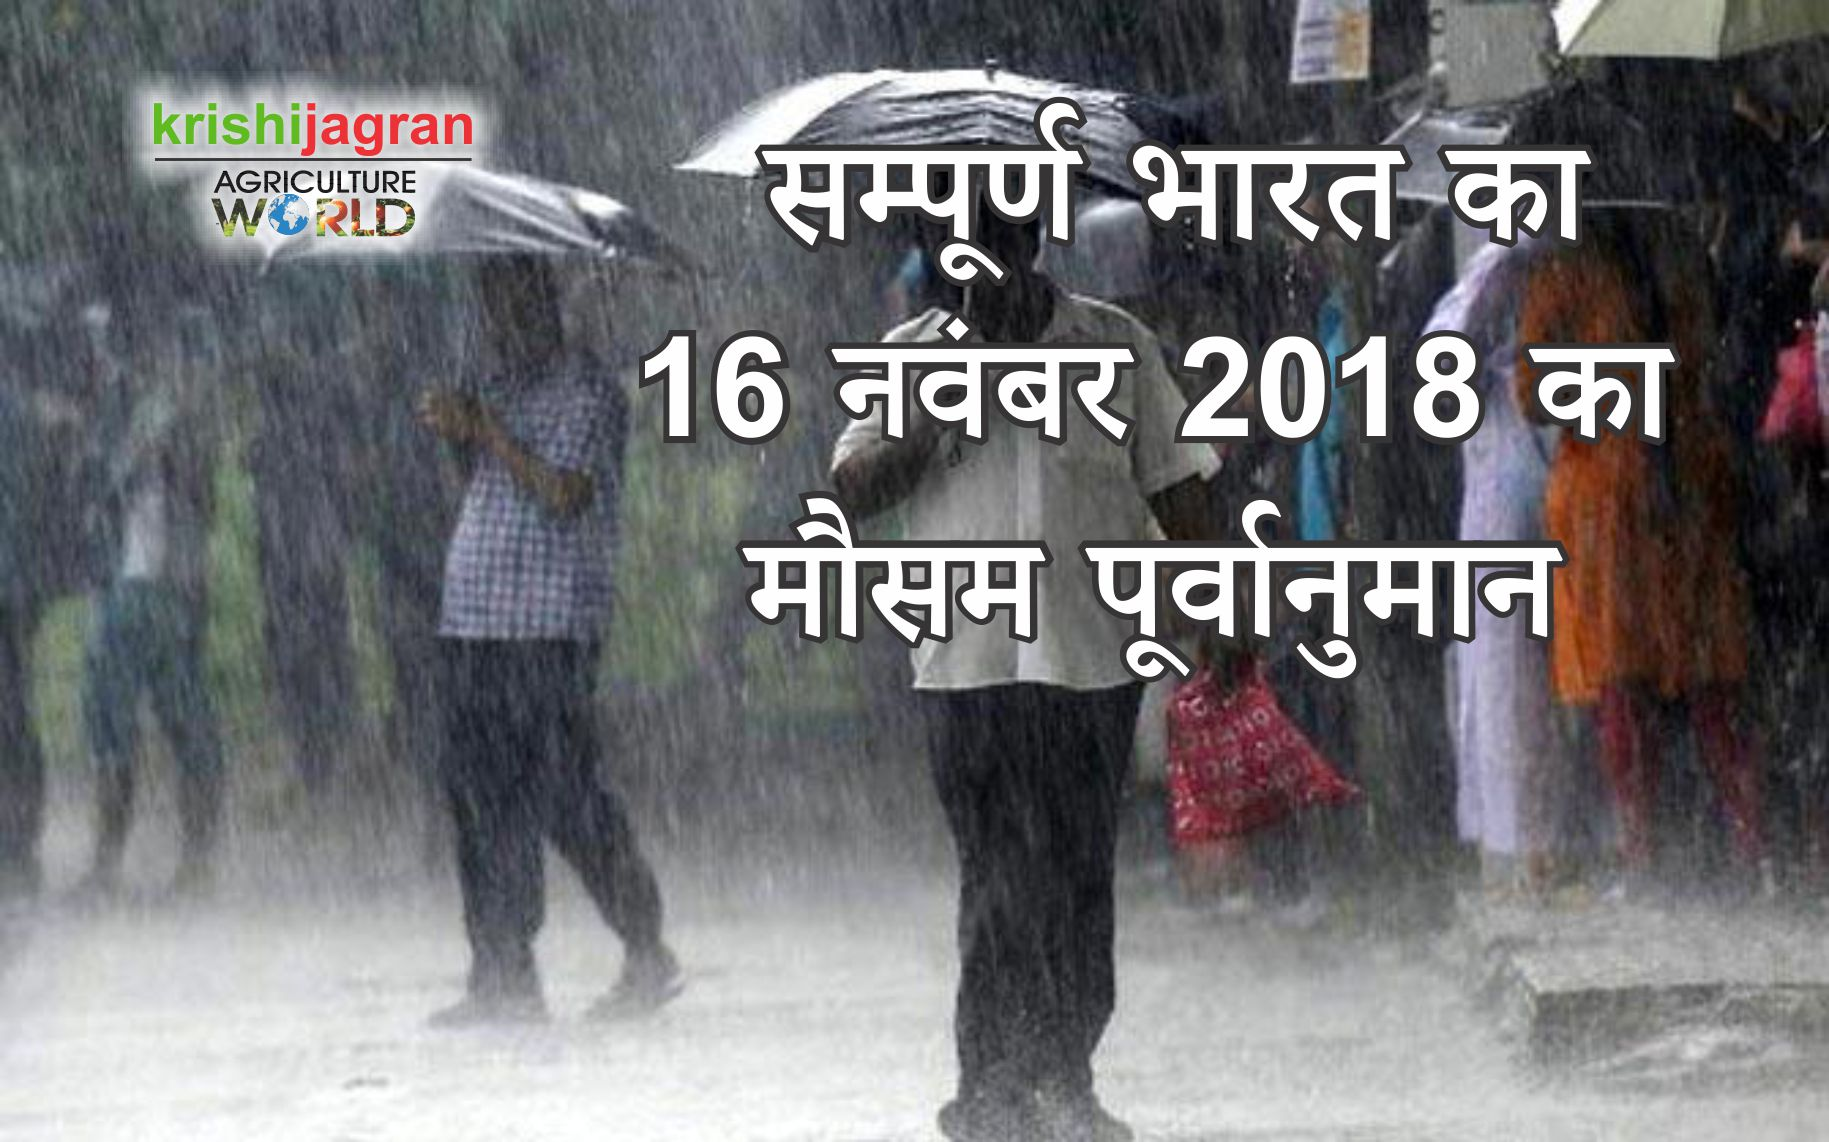 Will there be strong rain in southern India again?